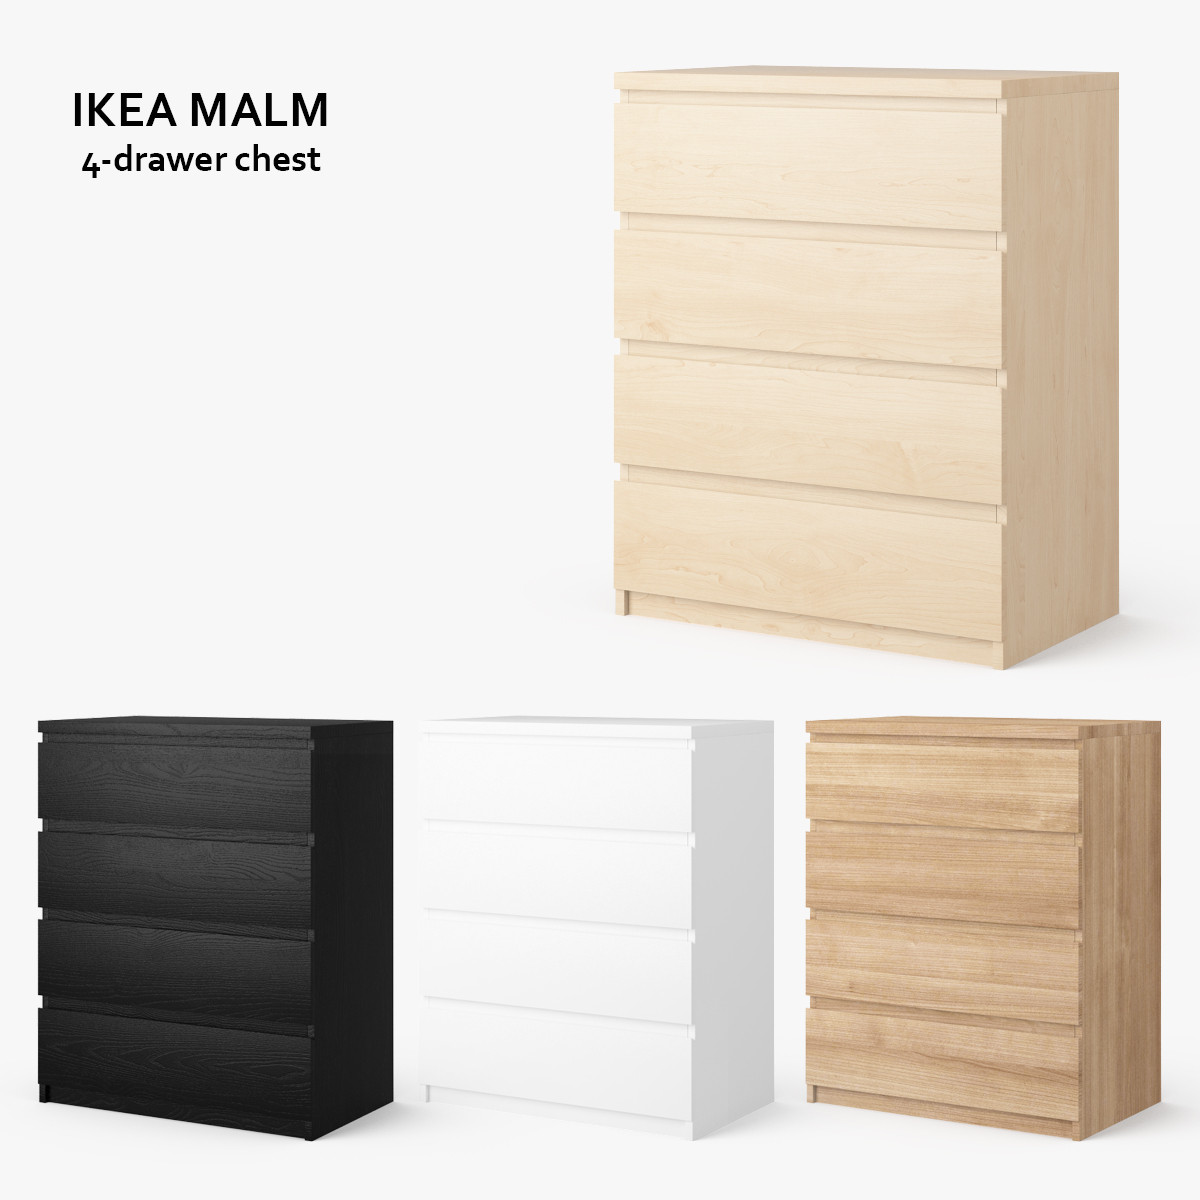 ikea malm 4 drawer chest obj. Black Bedroom Furniture Sets. Home Design Ideas